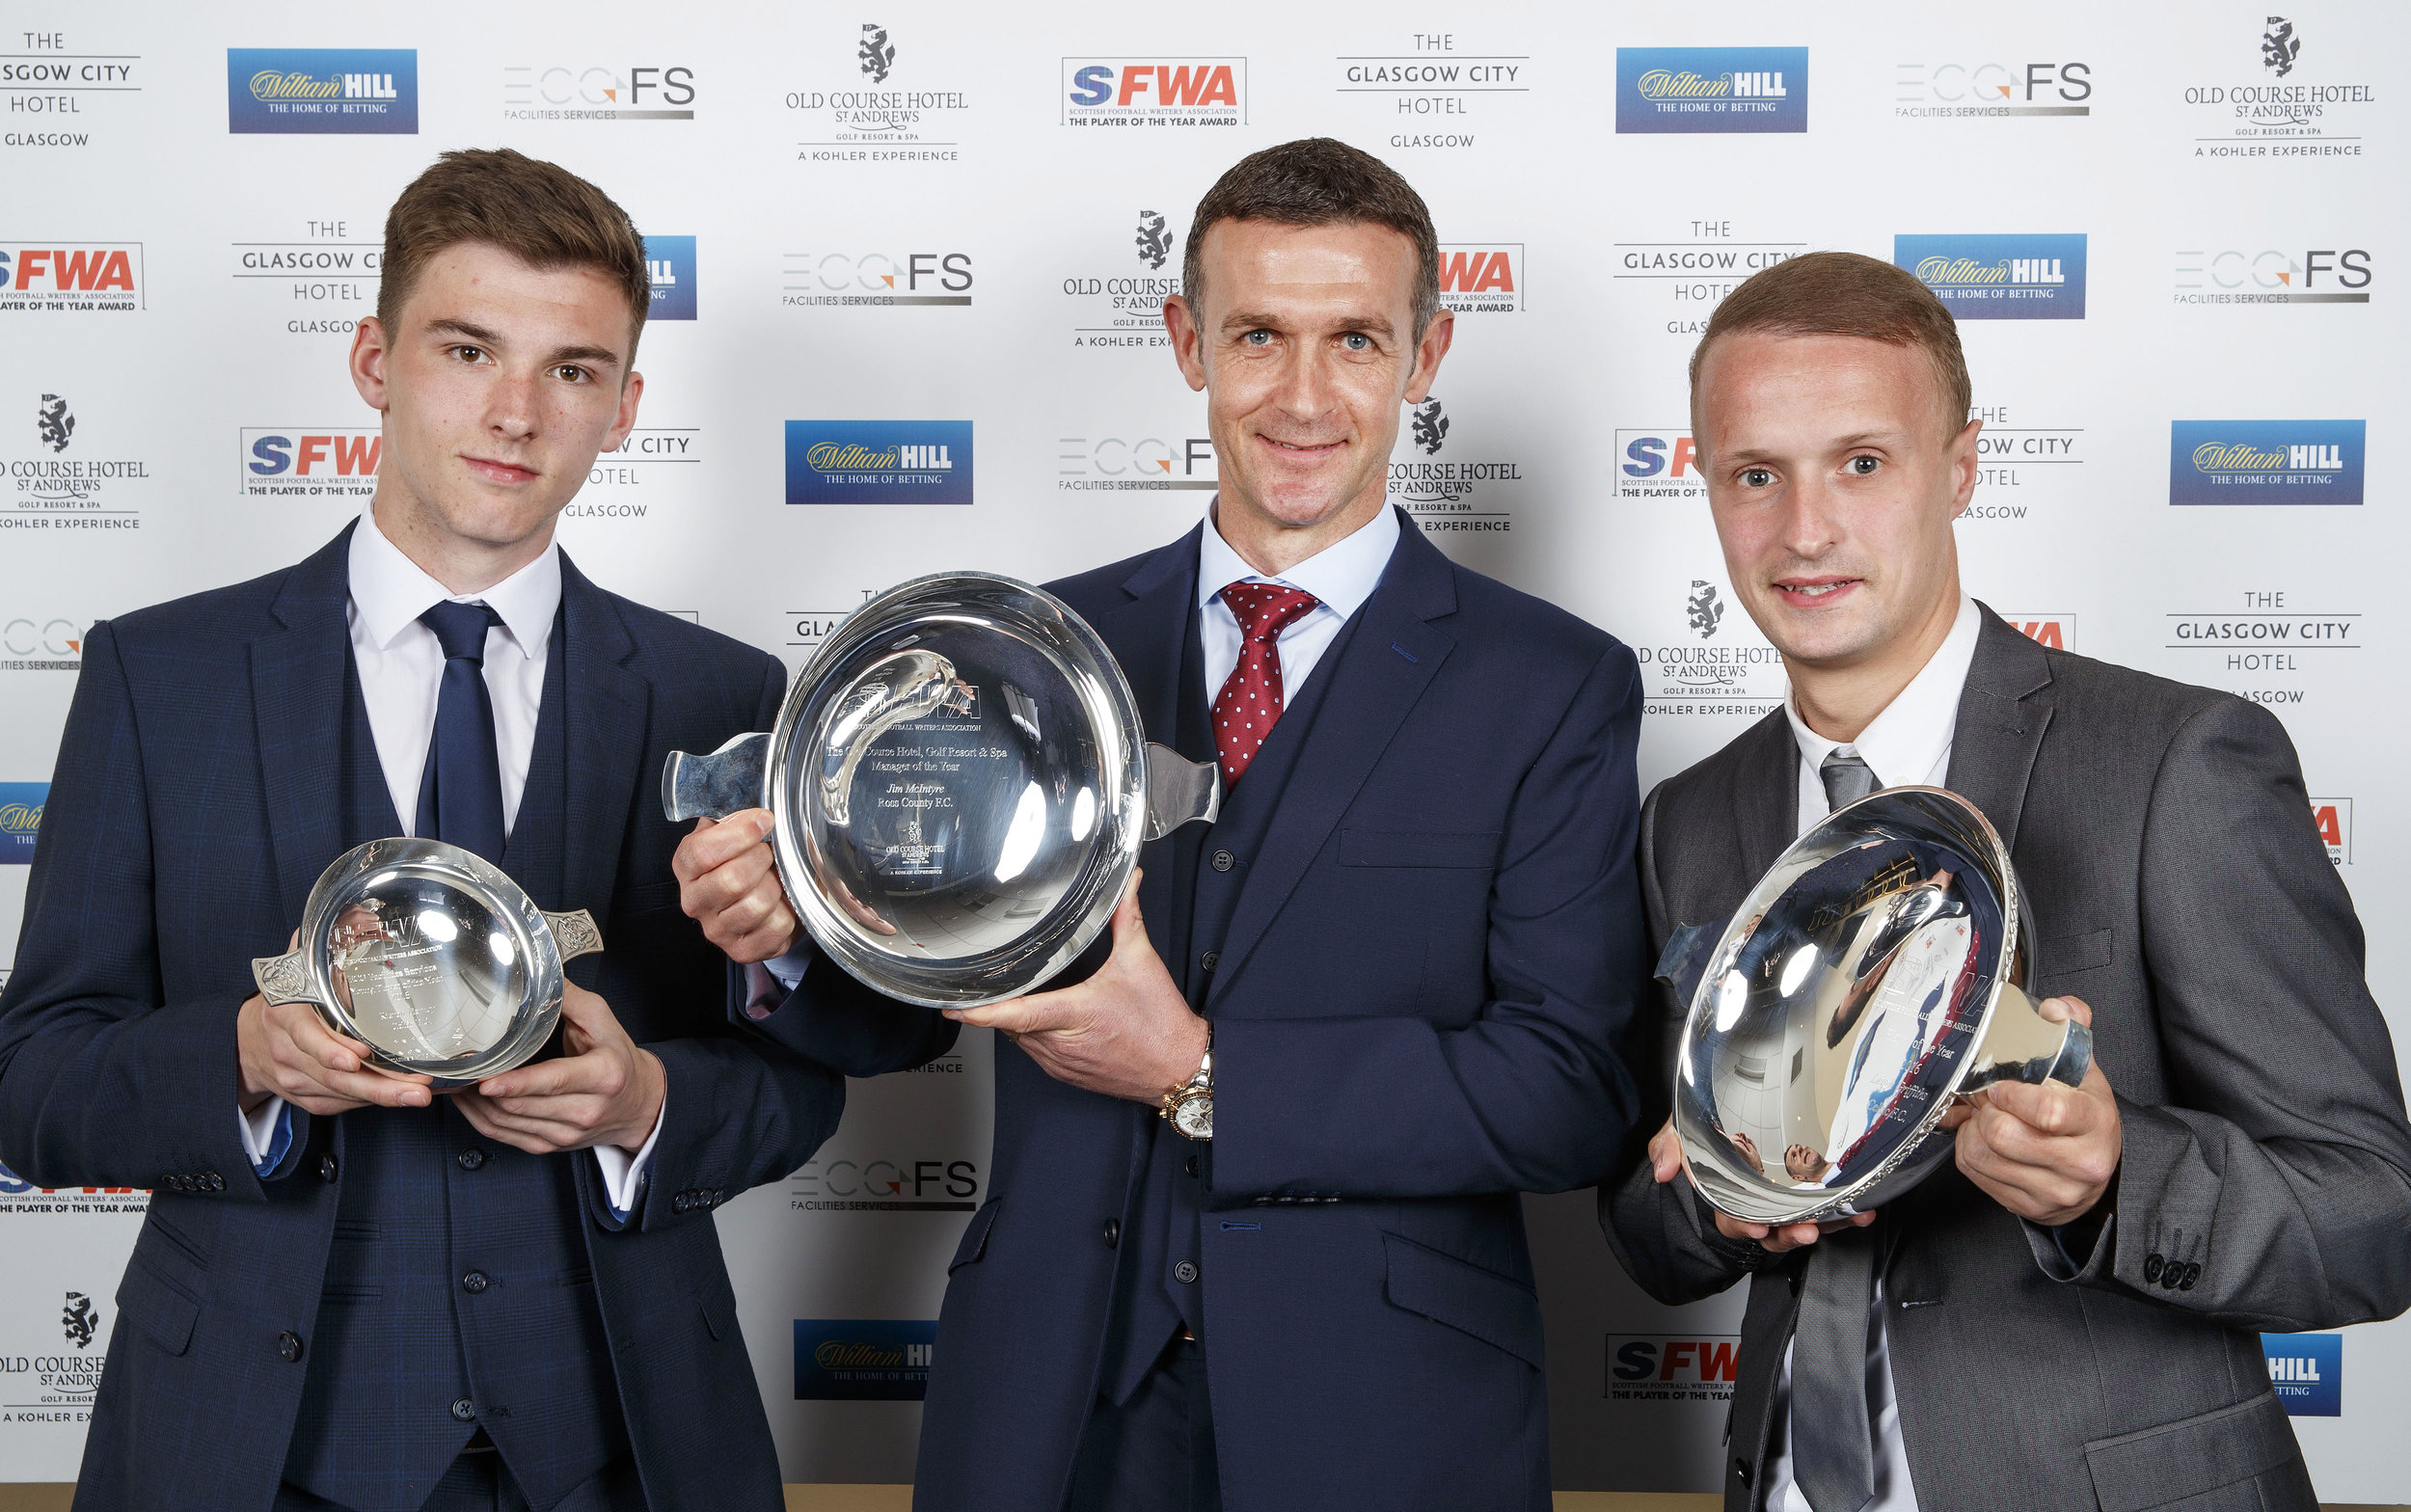 Celtic duo Keiran Tierney and Leigh Griffiths along with Ross County manager Jim McIntyre were the big winners at the 2016 SFWA Awards dinner